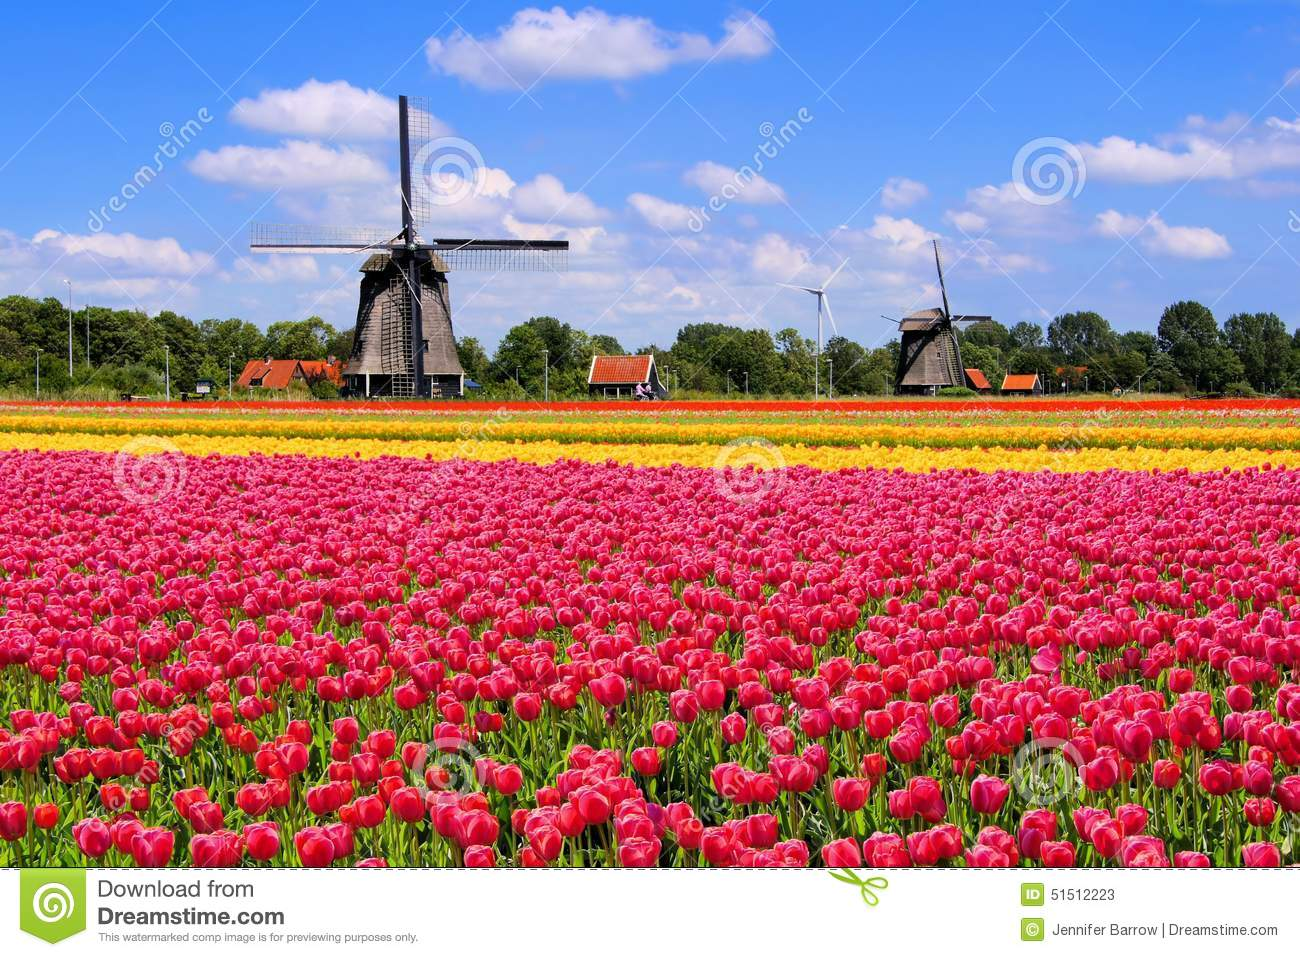 Colorful spring tulips with traditional Dutch windmills, Netherlands.